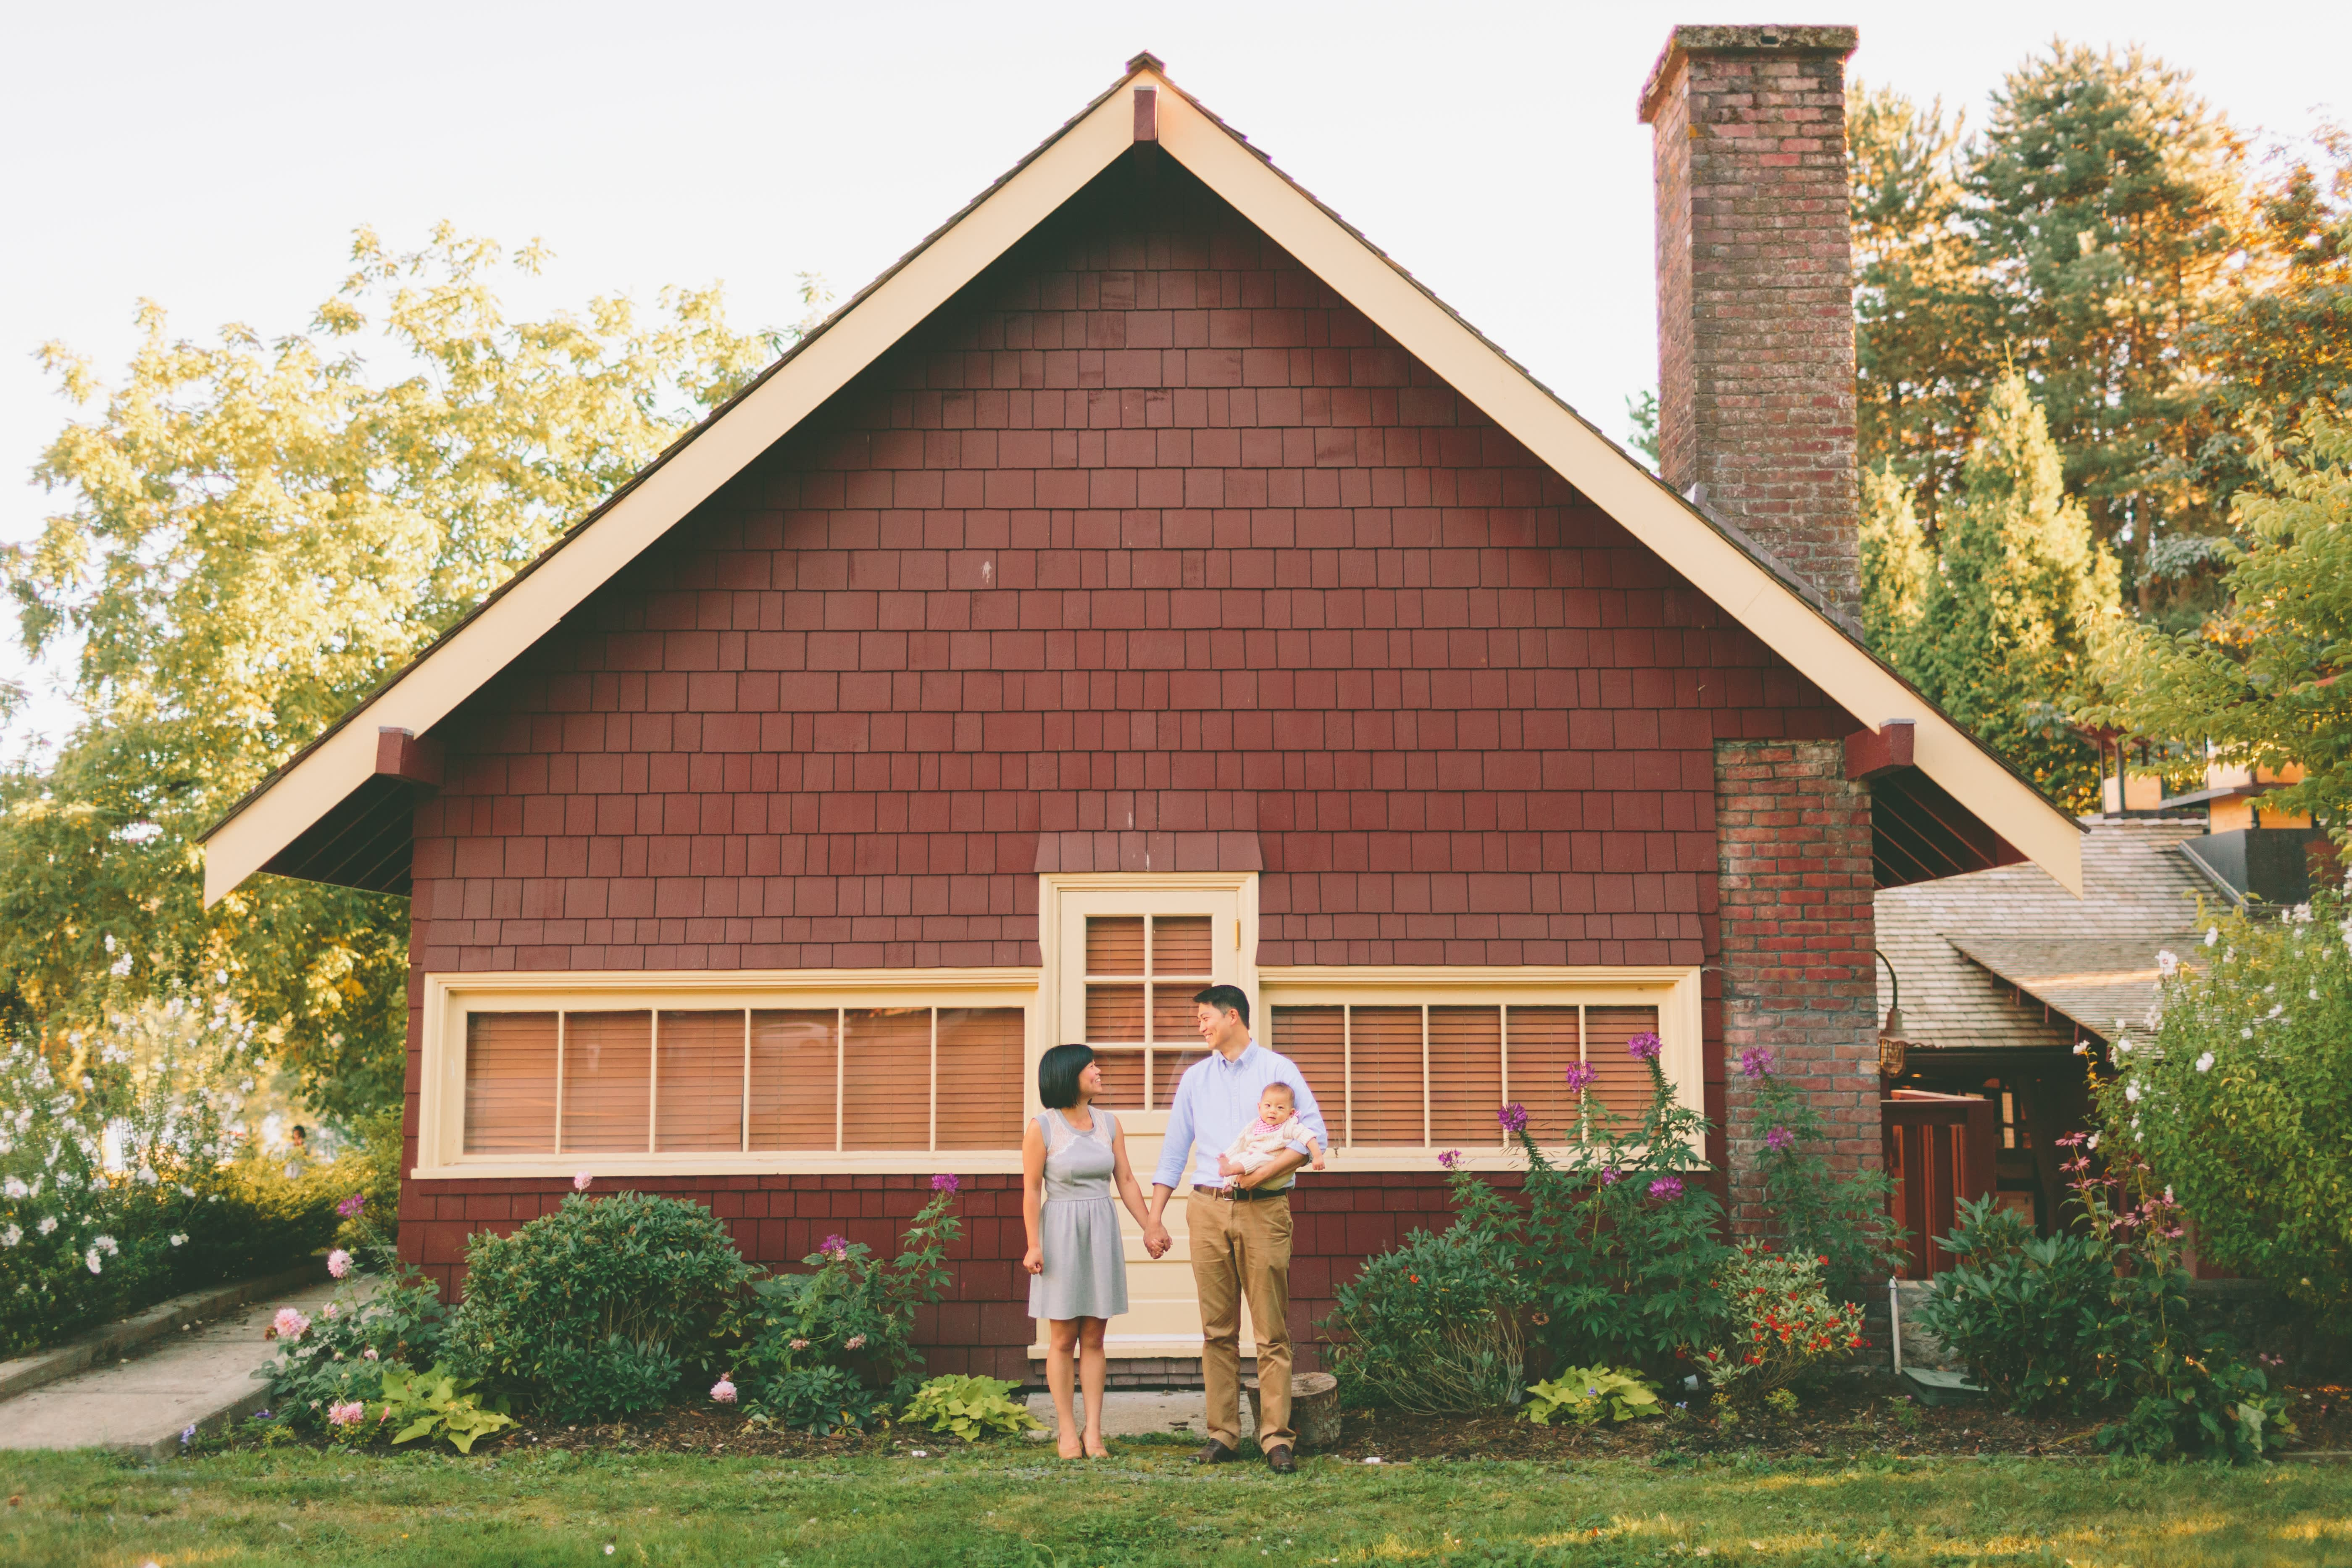 Living with your parents to save money might dim your chances of becoming a homeowner